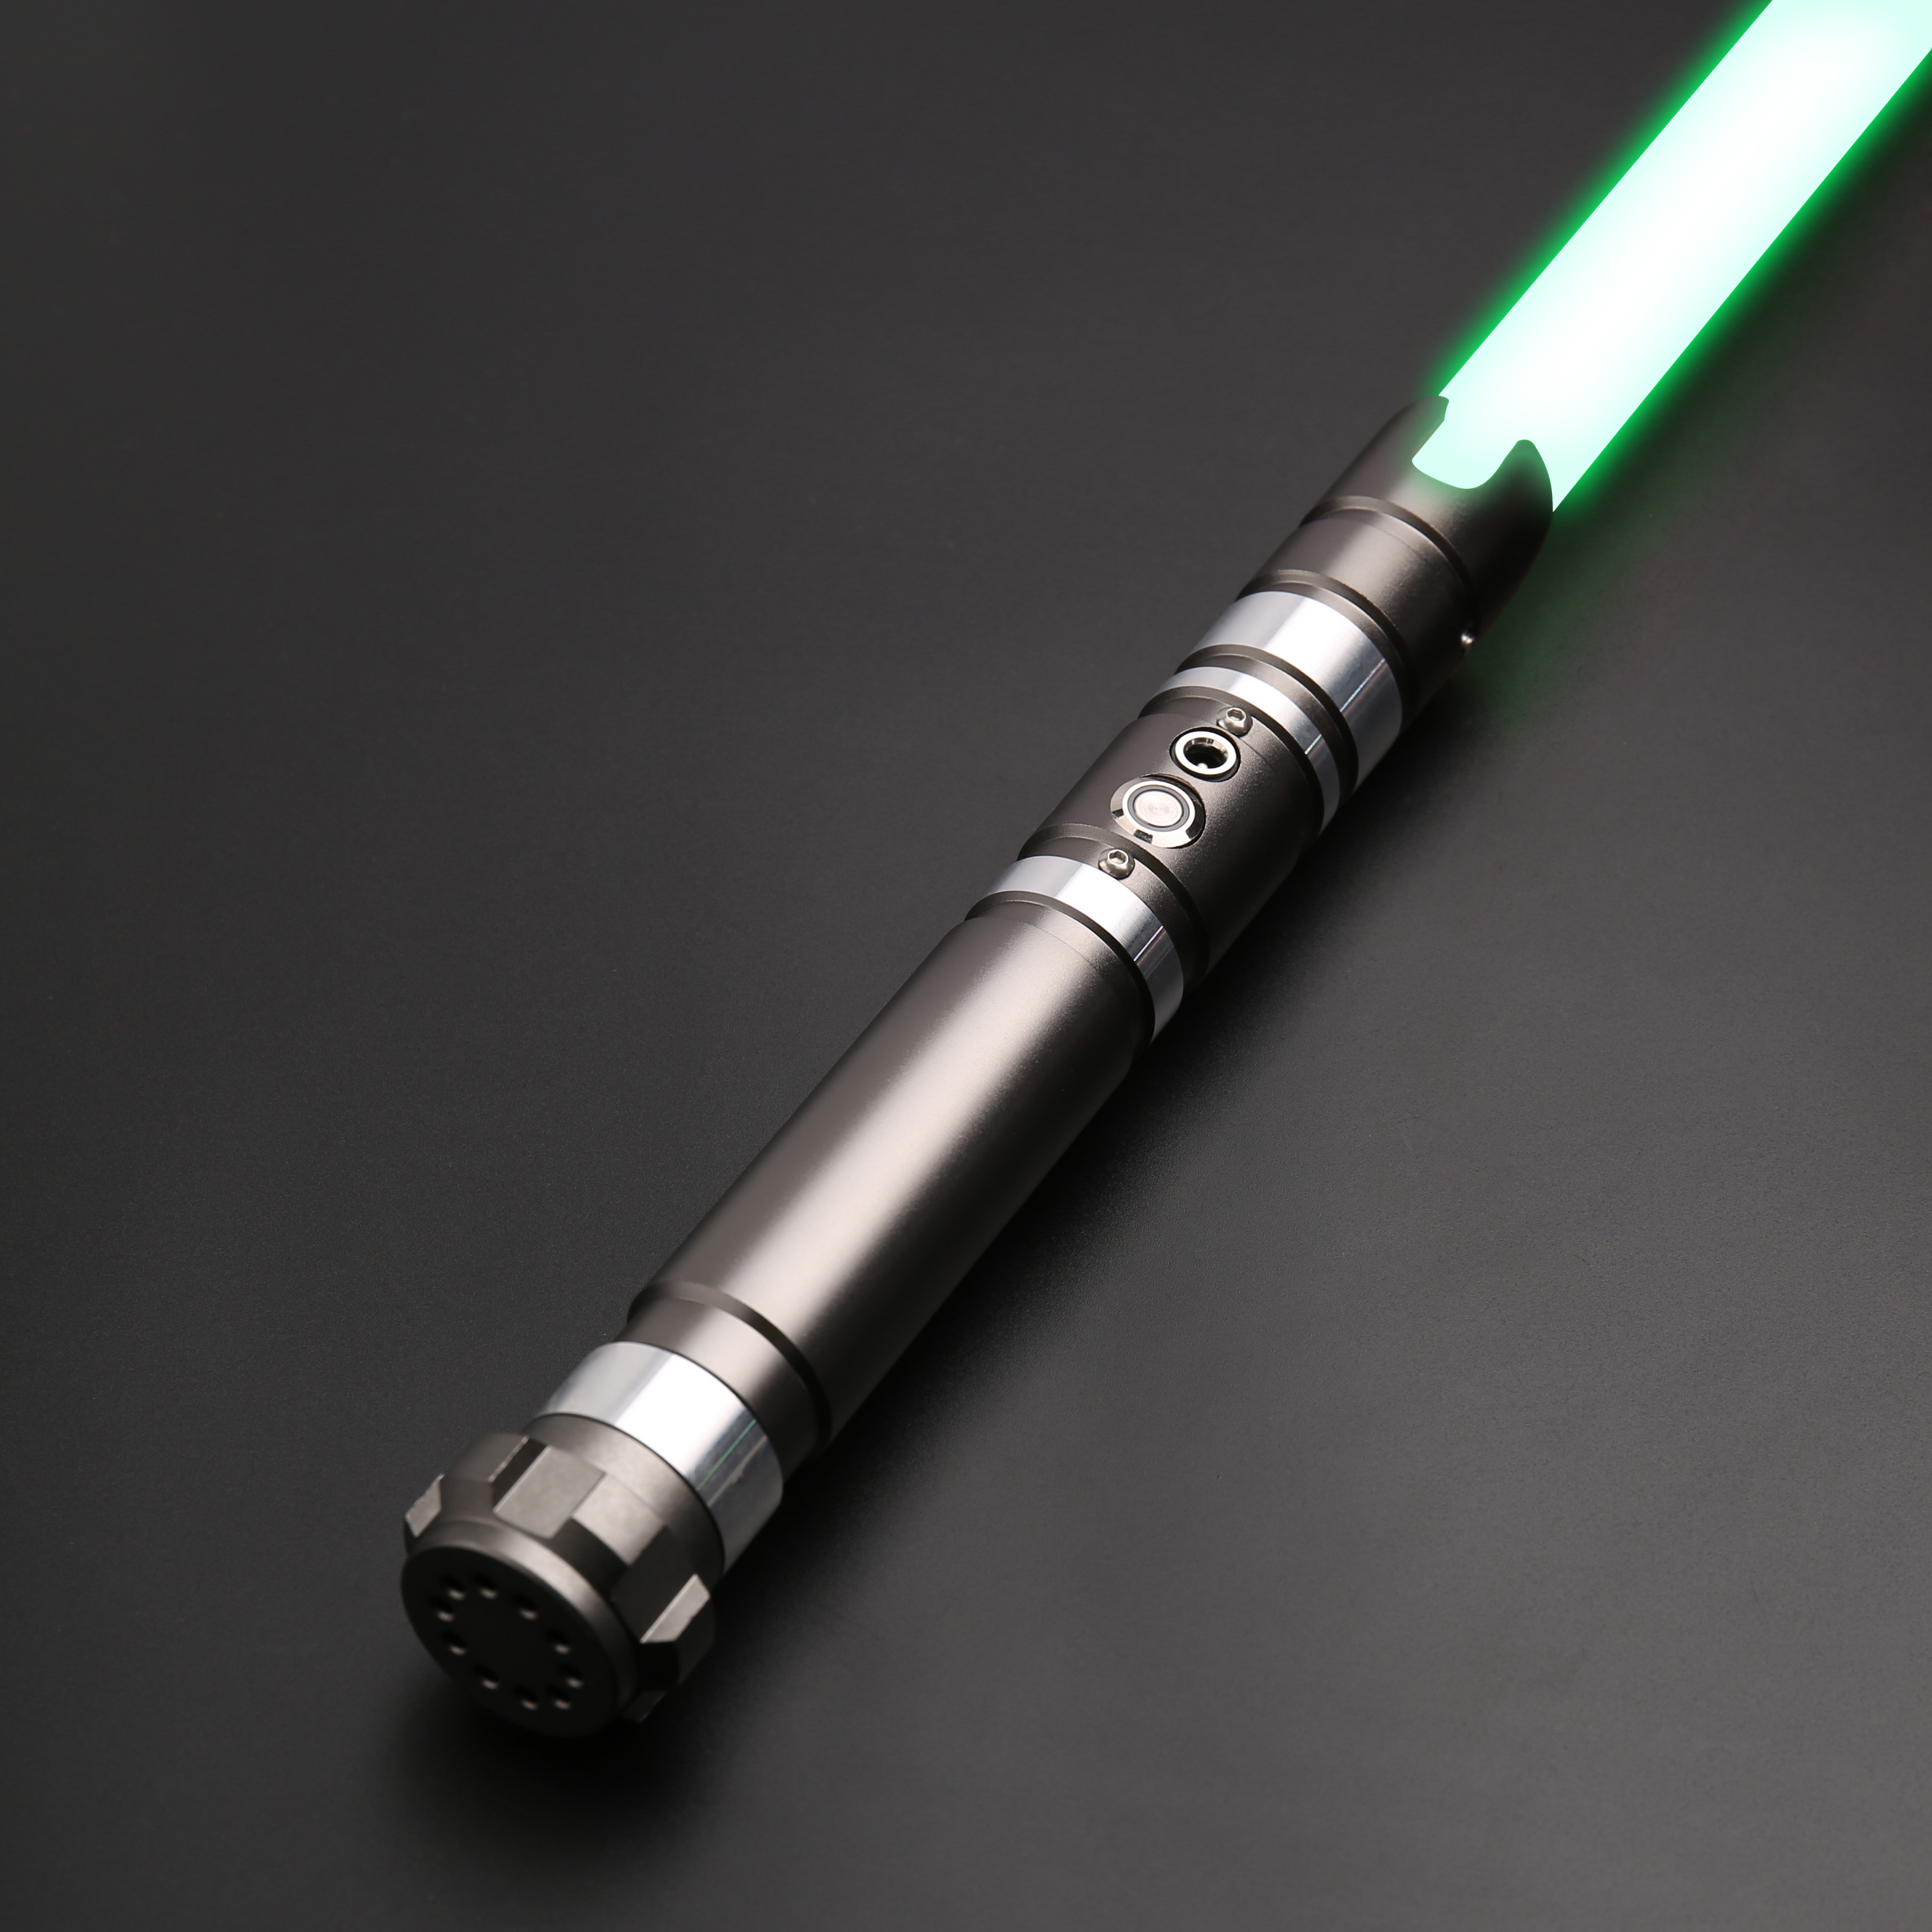 TXQsaber Dueling Lightsaber 1 Inch RGB Blade Metal Handle With Sound And LED Light Force FX FOC Saber Christmas-TS012